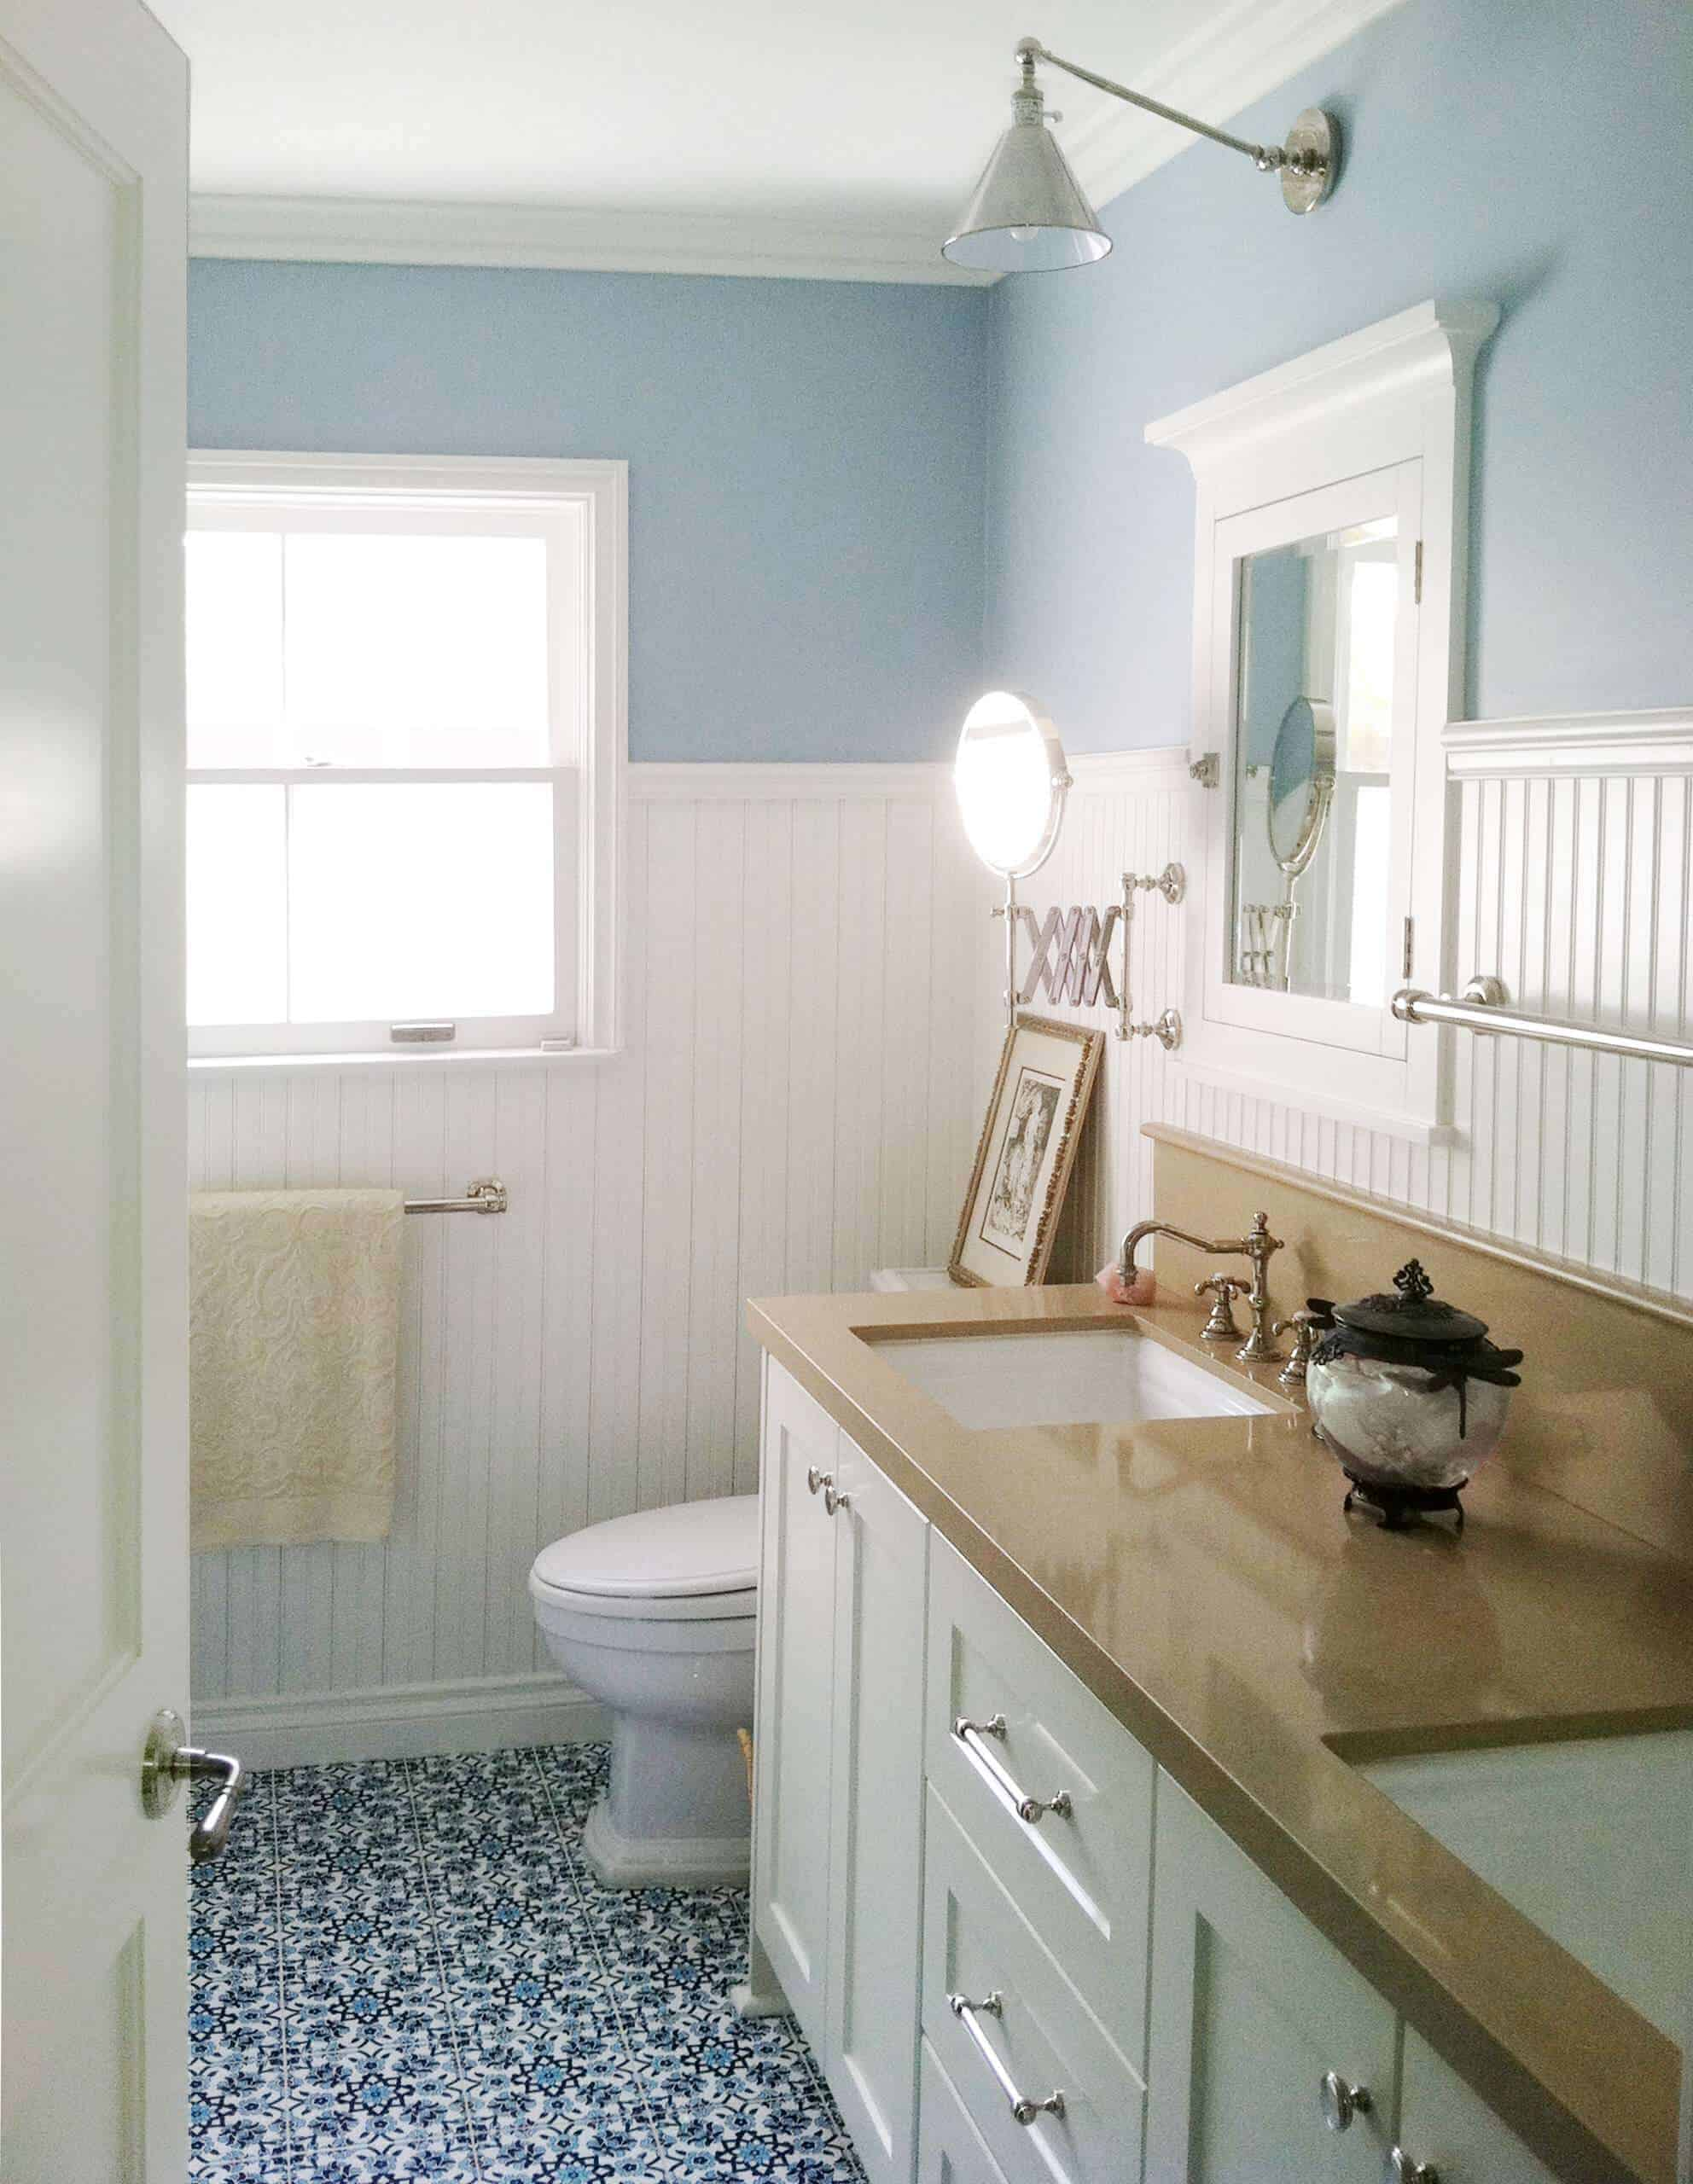 Can You Paint Bathroom Countertops